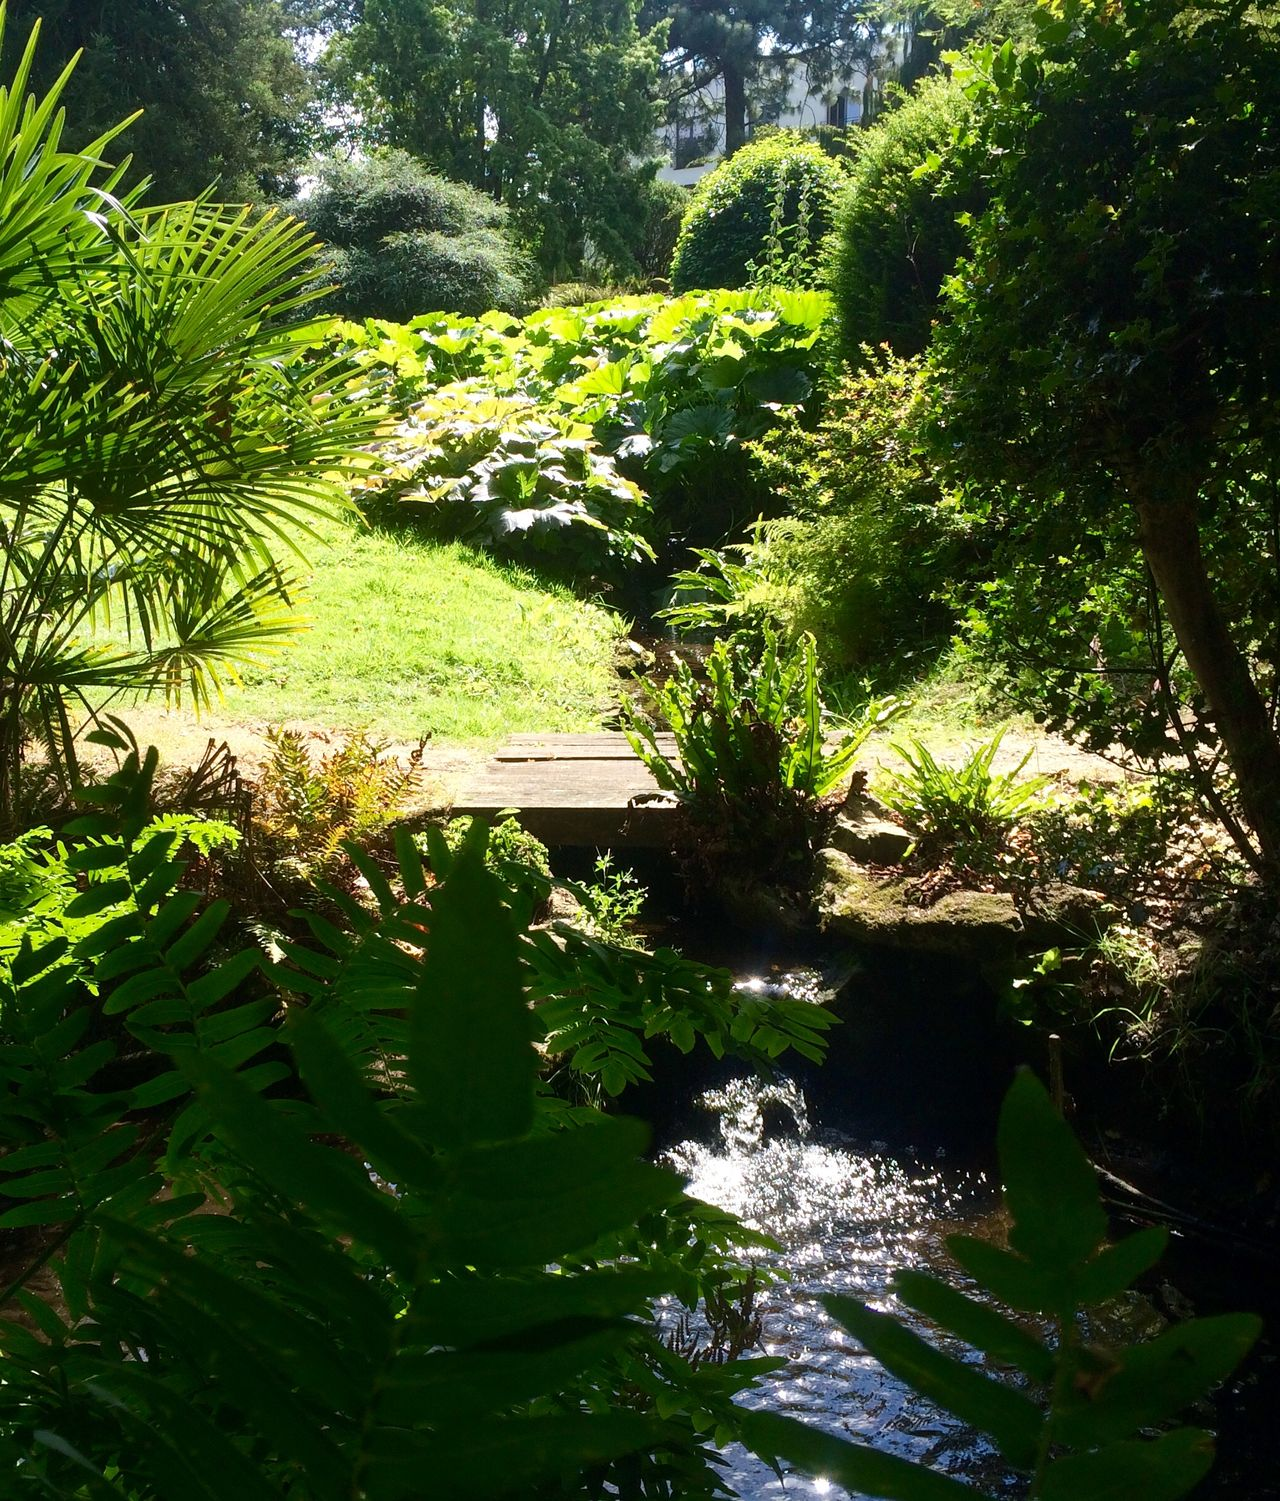 Running water Day Ferns Garden Nature No People Outdoors Plant Running Water Summer ☀ Summertime Tree Water